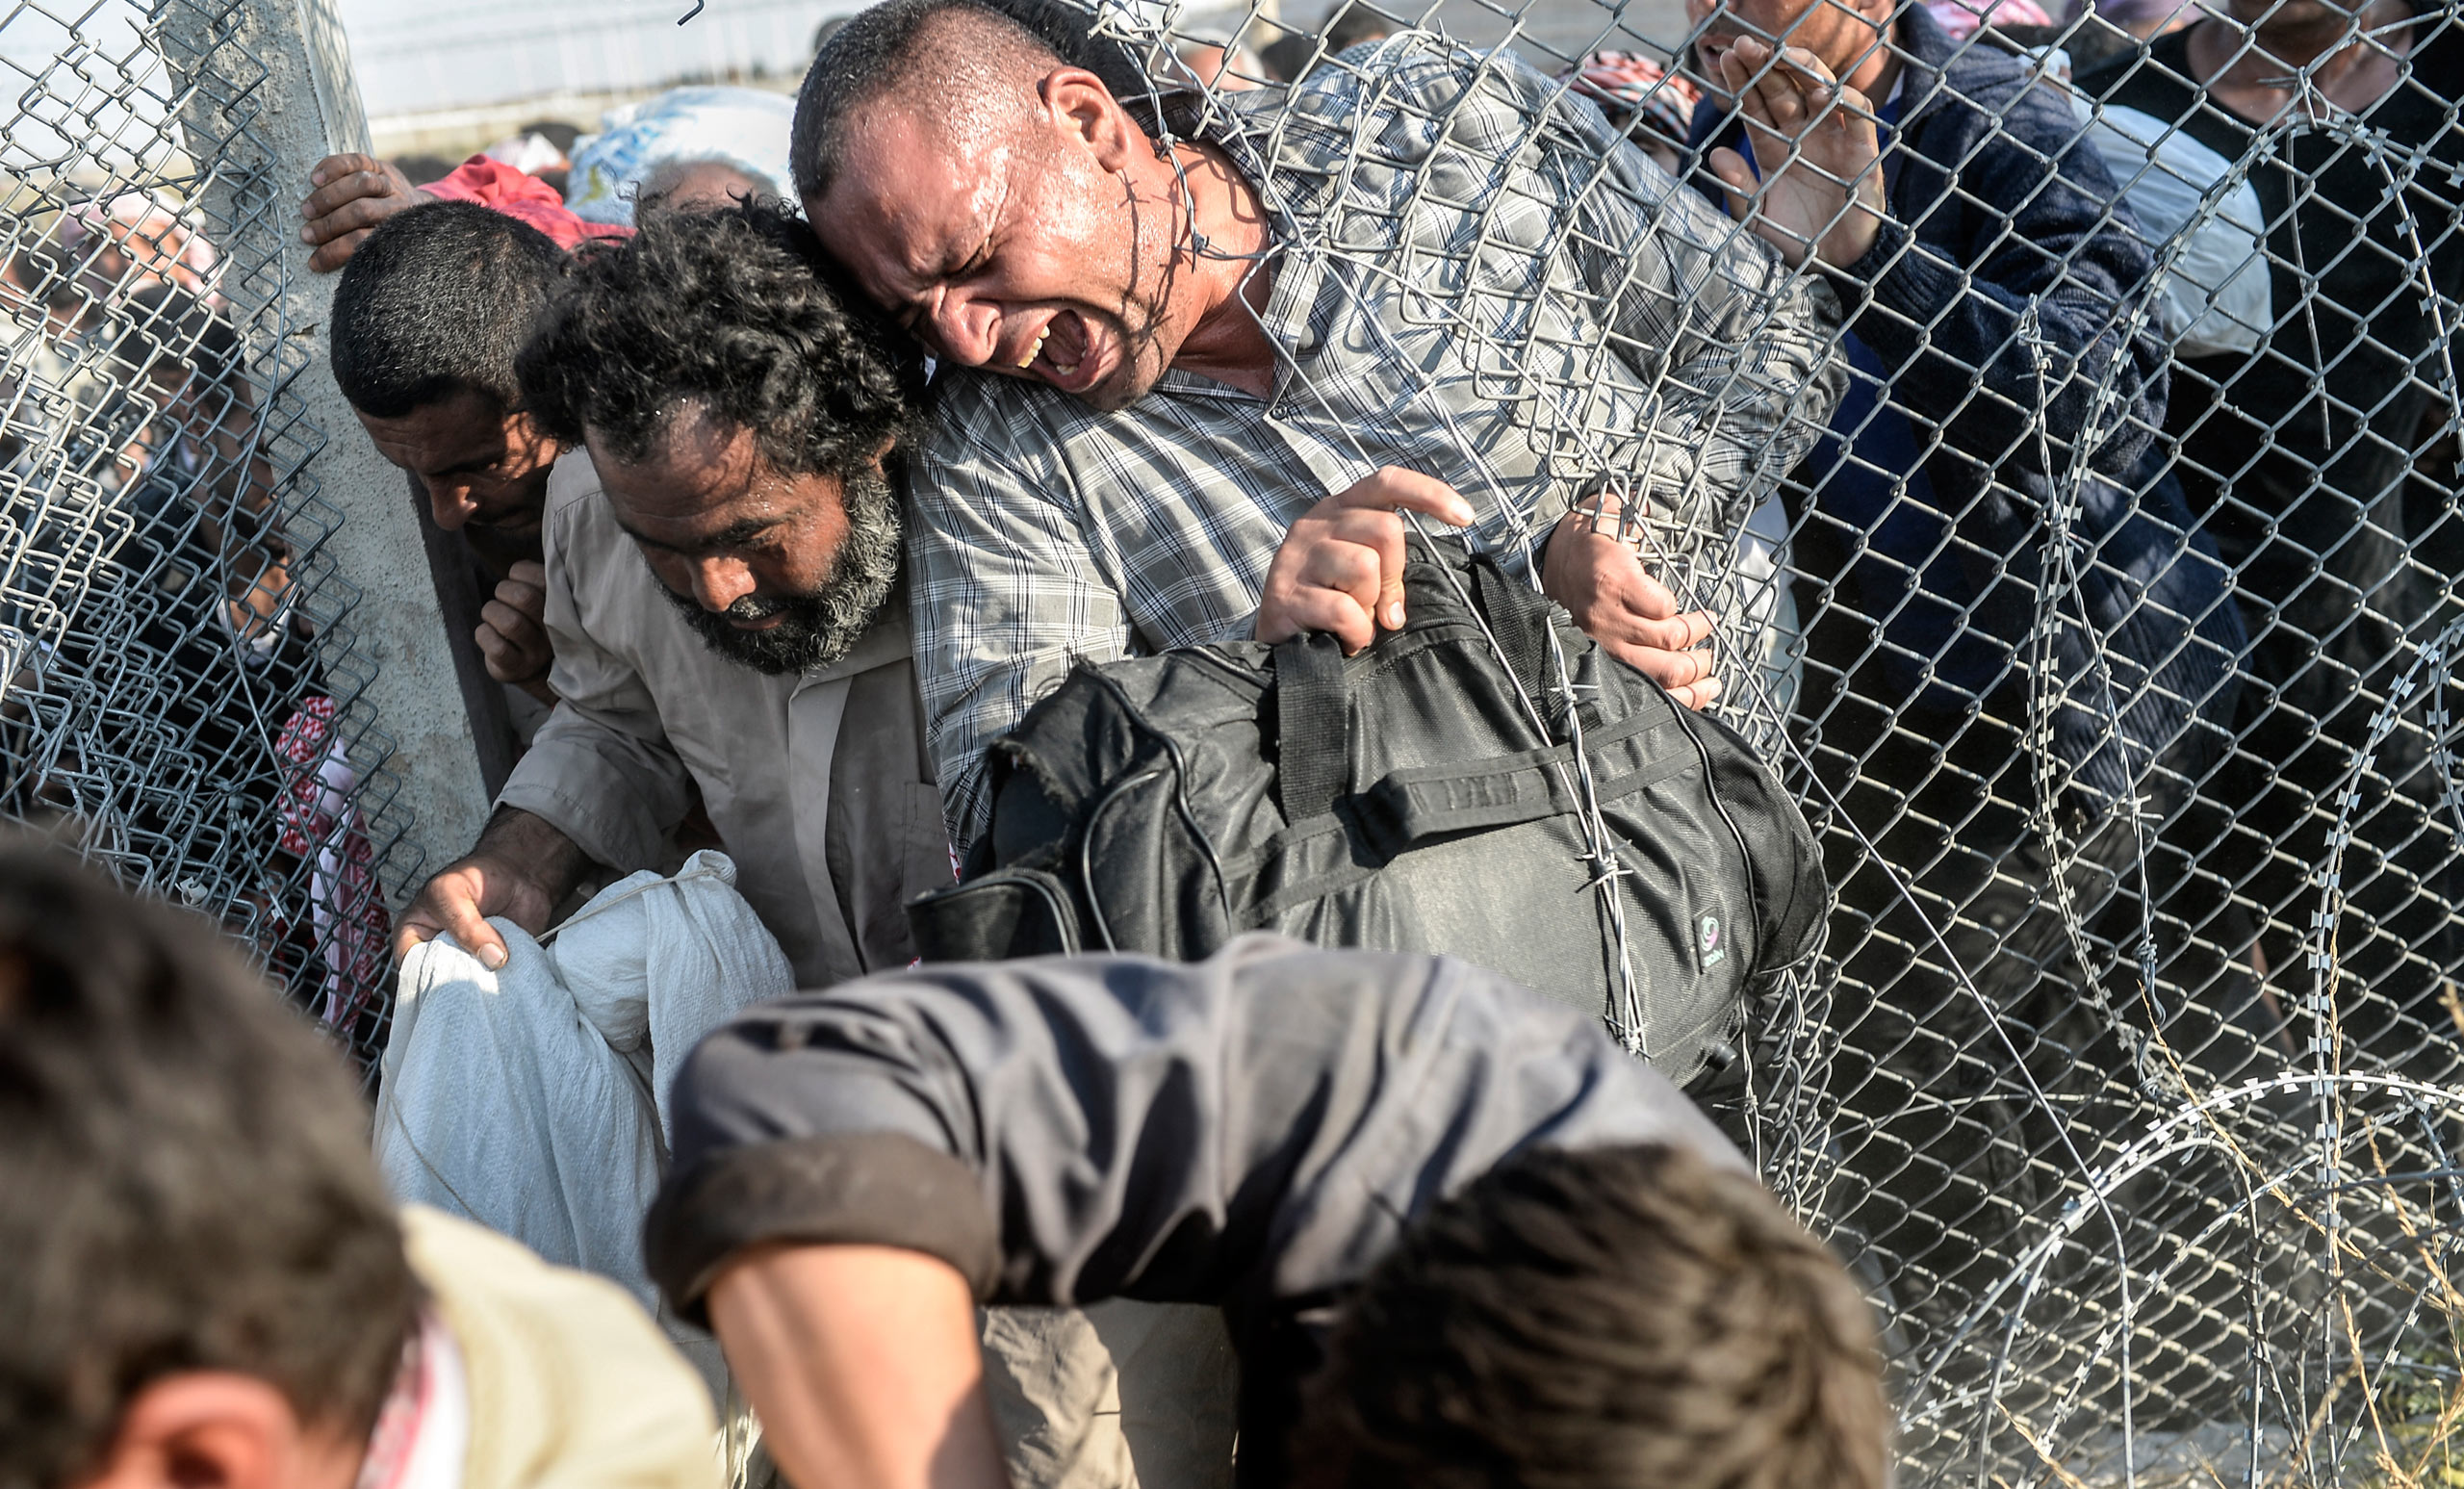 Thousands of Syrians break through the torn wire fences, crossing illegally from Tell Abyad into the Turkish territory in Akçakale, in the Şanlıurfa province. June 14, 2015.